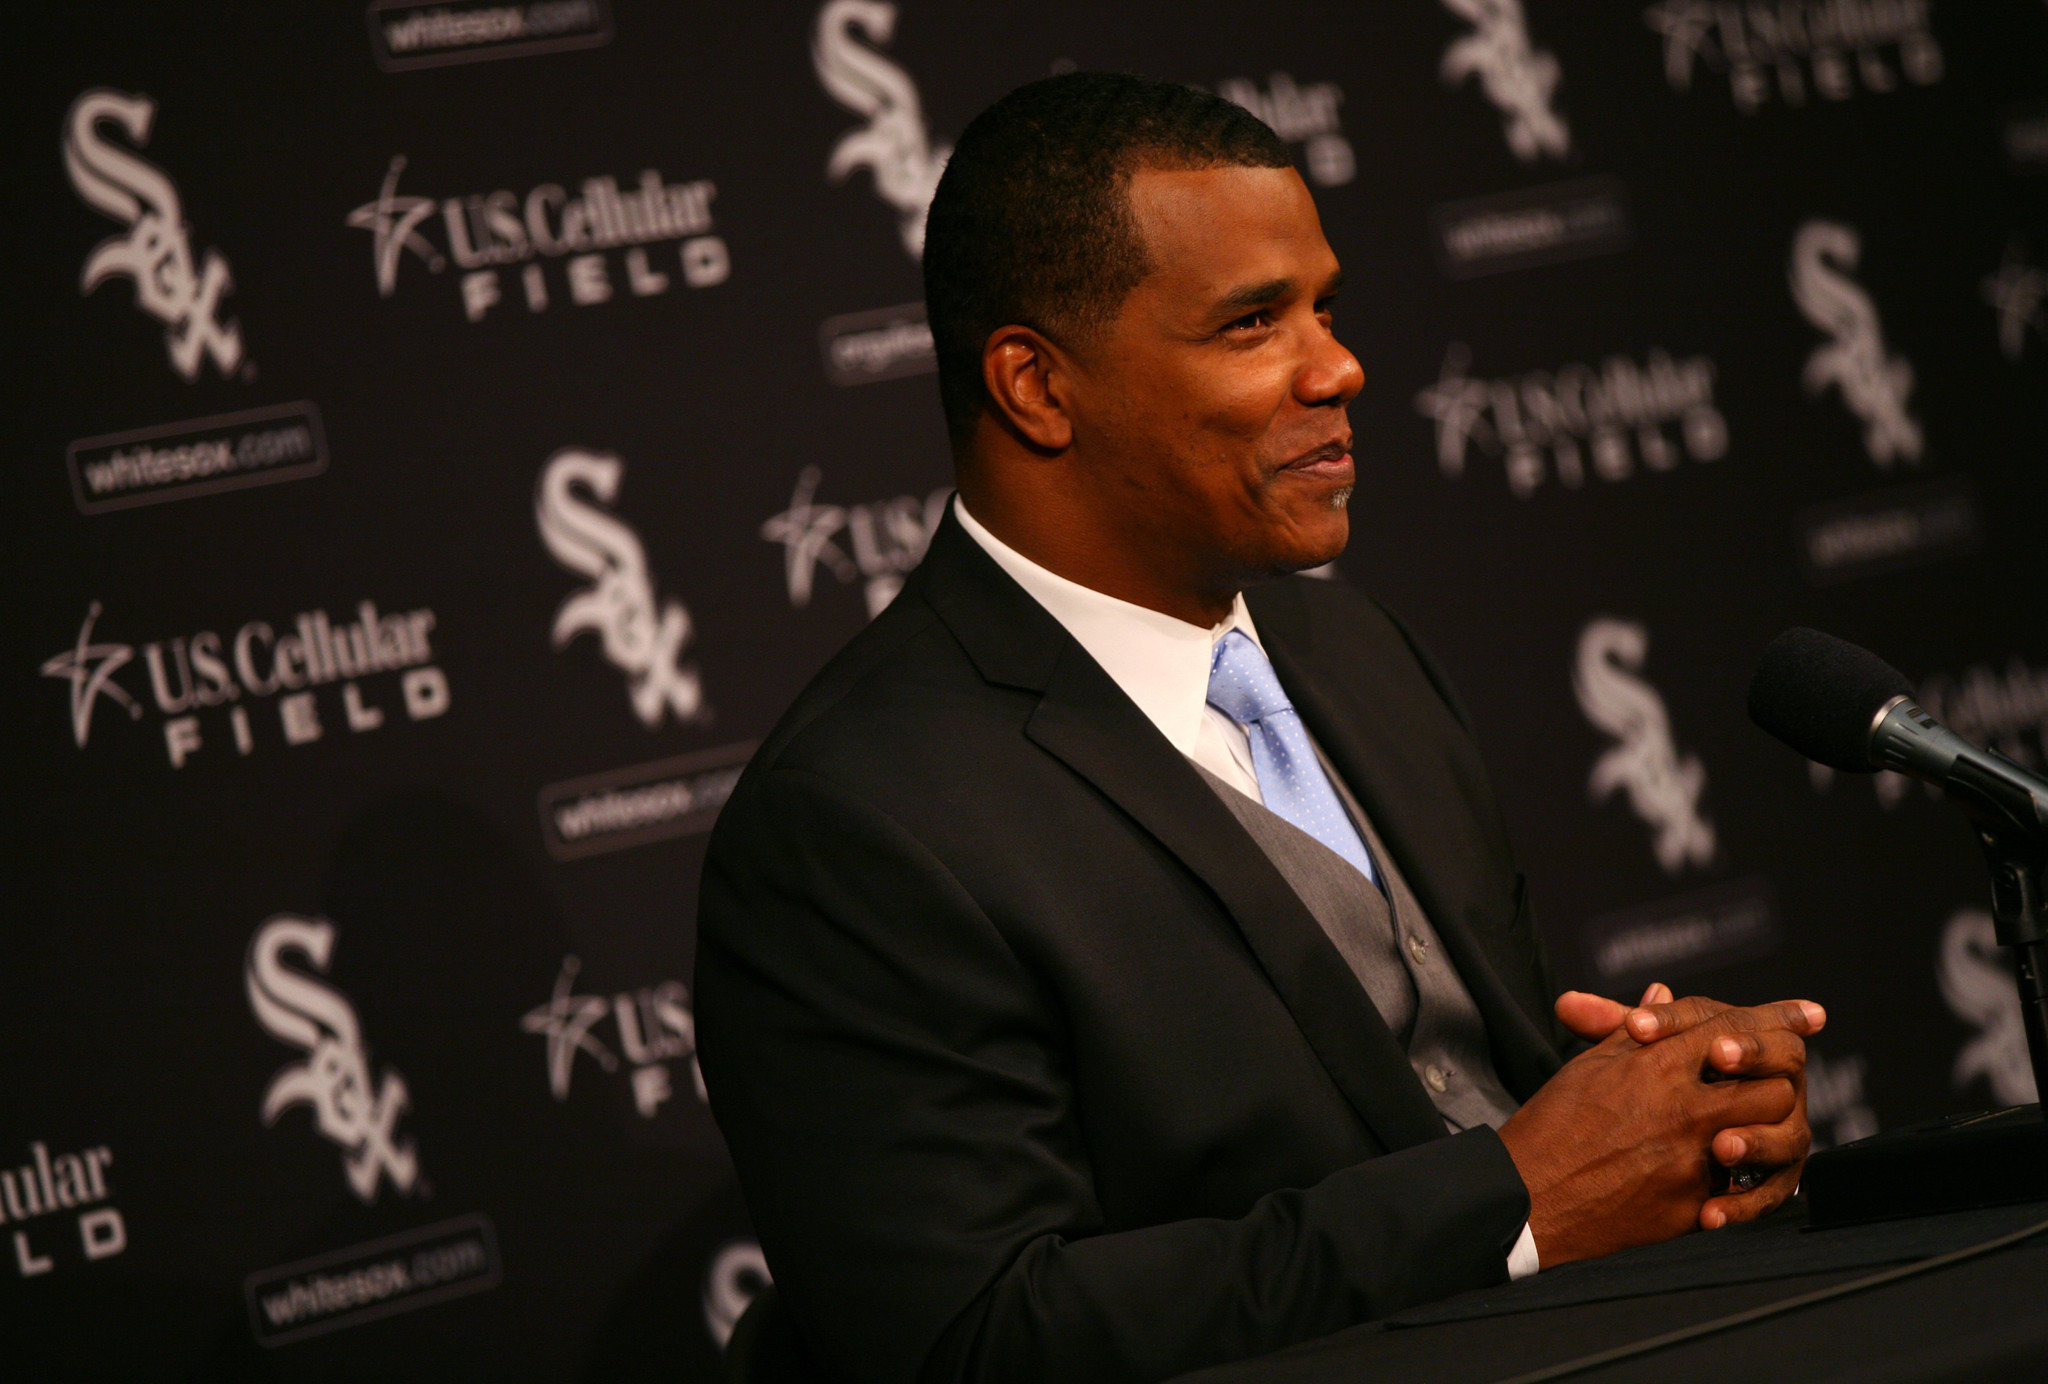 White Sox general manager Ken Williams is promoted to the position of executive vice president with Rick Hahn announced as new White Sox GM at U.S. Cellular Field Friday, Oct. 26 2012.  B582472752Z.1 (E. Jason Wambsgans/Chicago Tribune) ....OUTSIDE TRIBUNE CO.- NO MAGS,  NO SALES, NO INTERNET, NO TV, CHICAGO OUT, NO DIGITAL MANIPULATION...